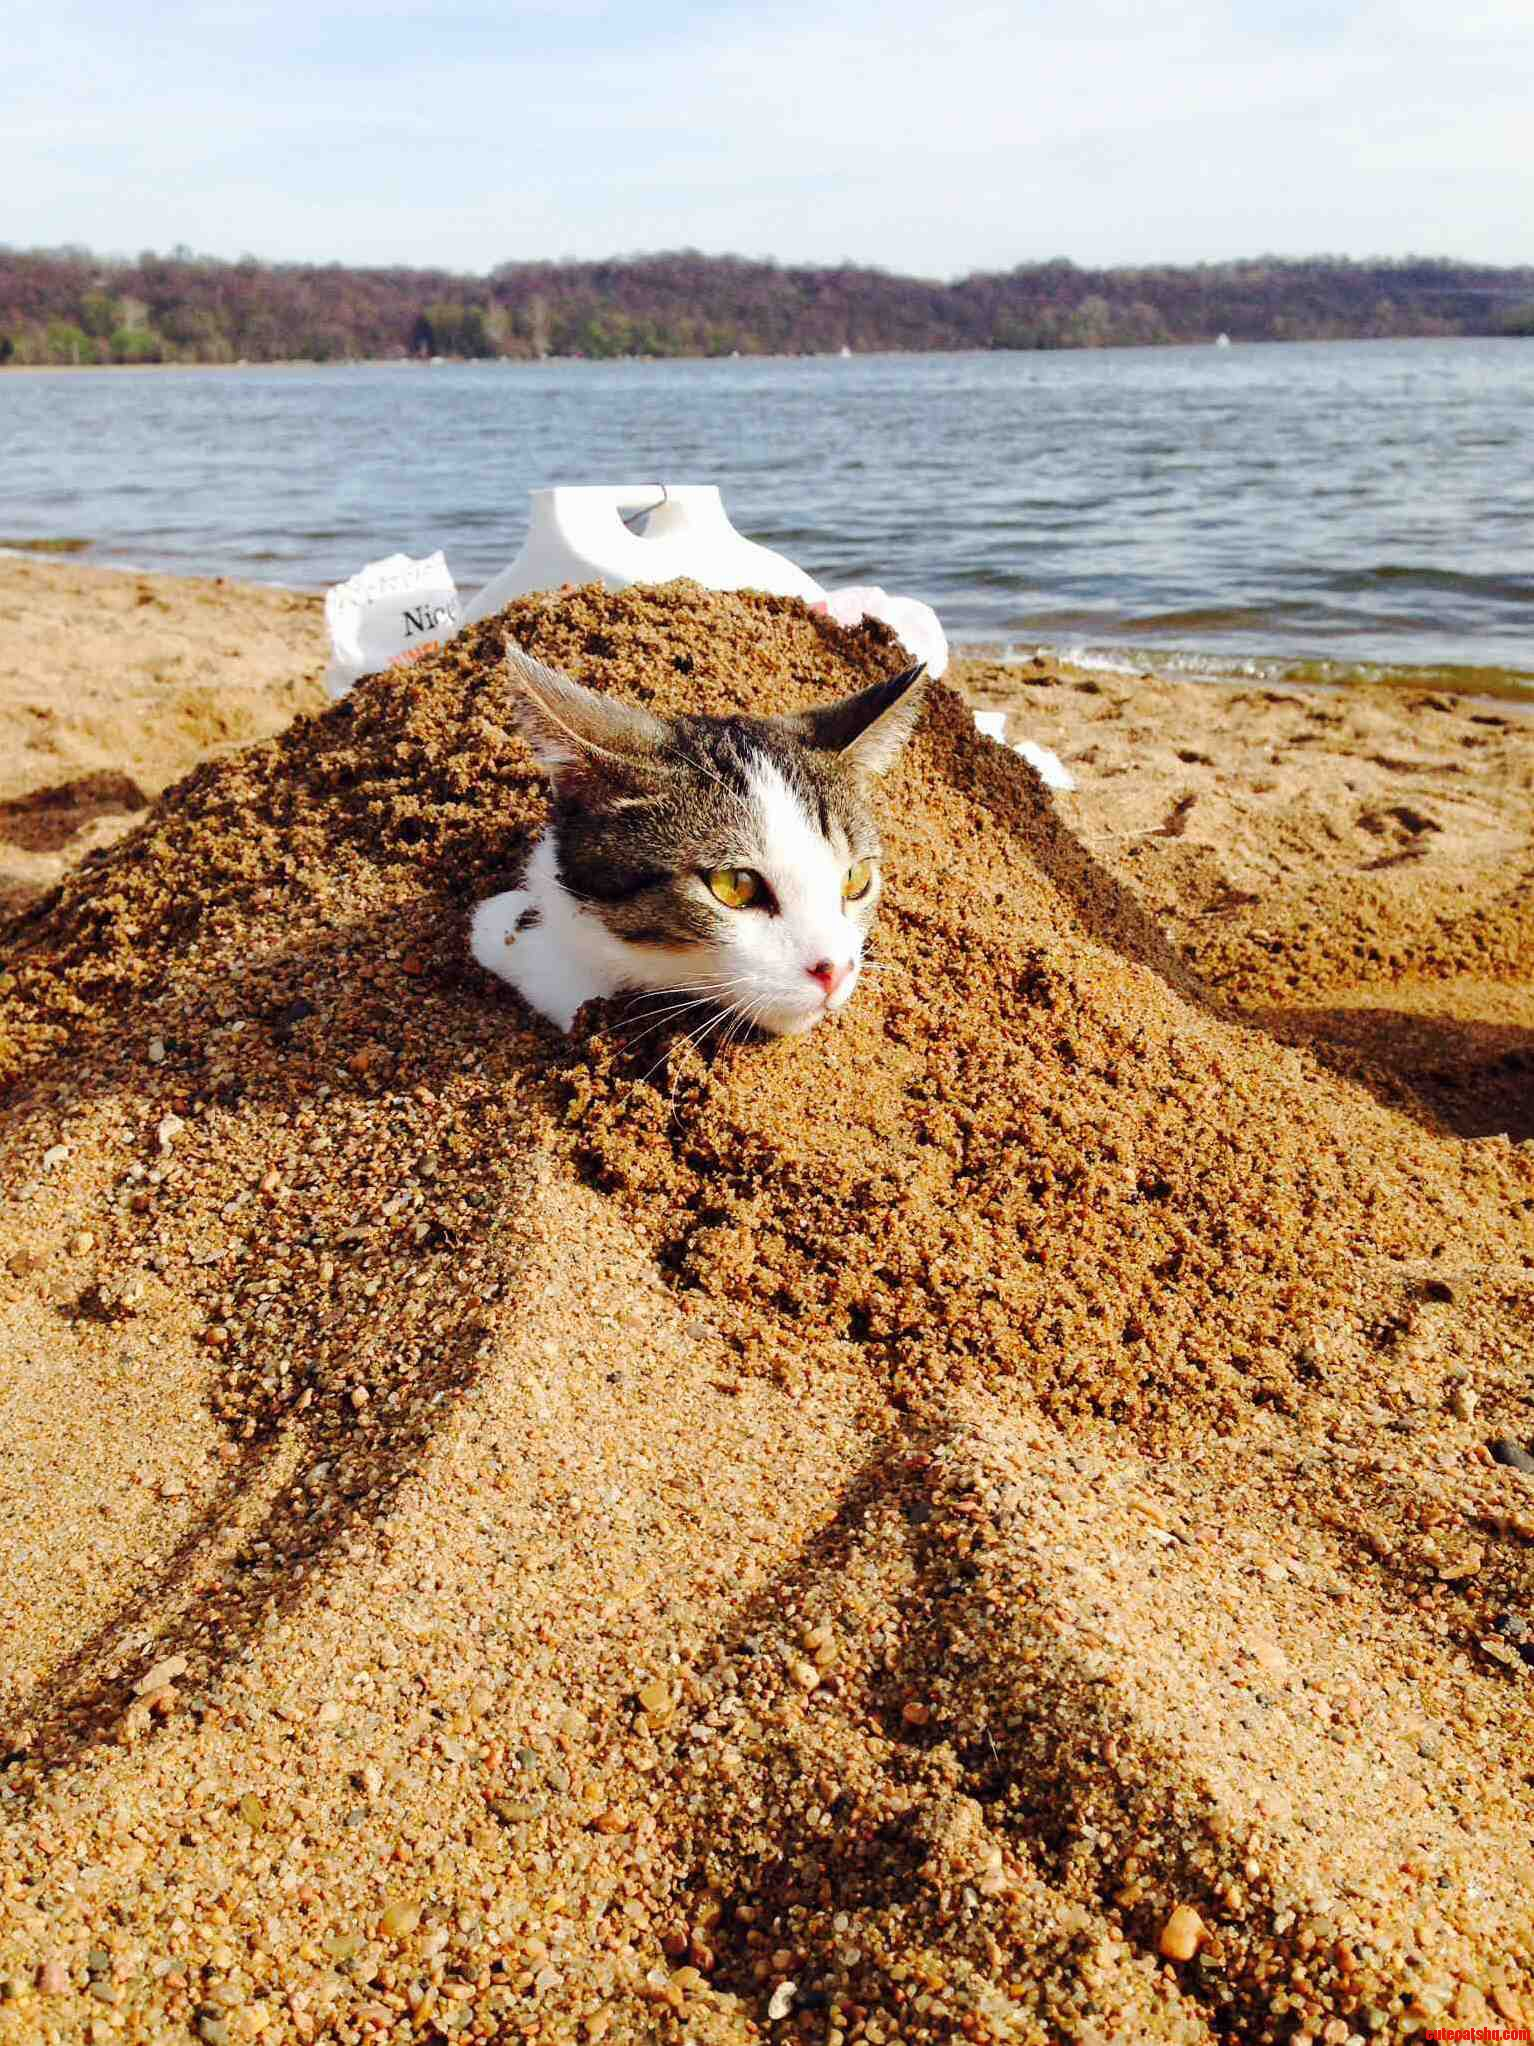 Me And My Bf Took My Cat To The Lake And Buried Him In The Bit Litter Box Lol.